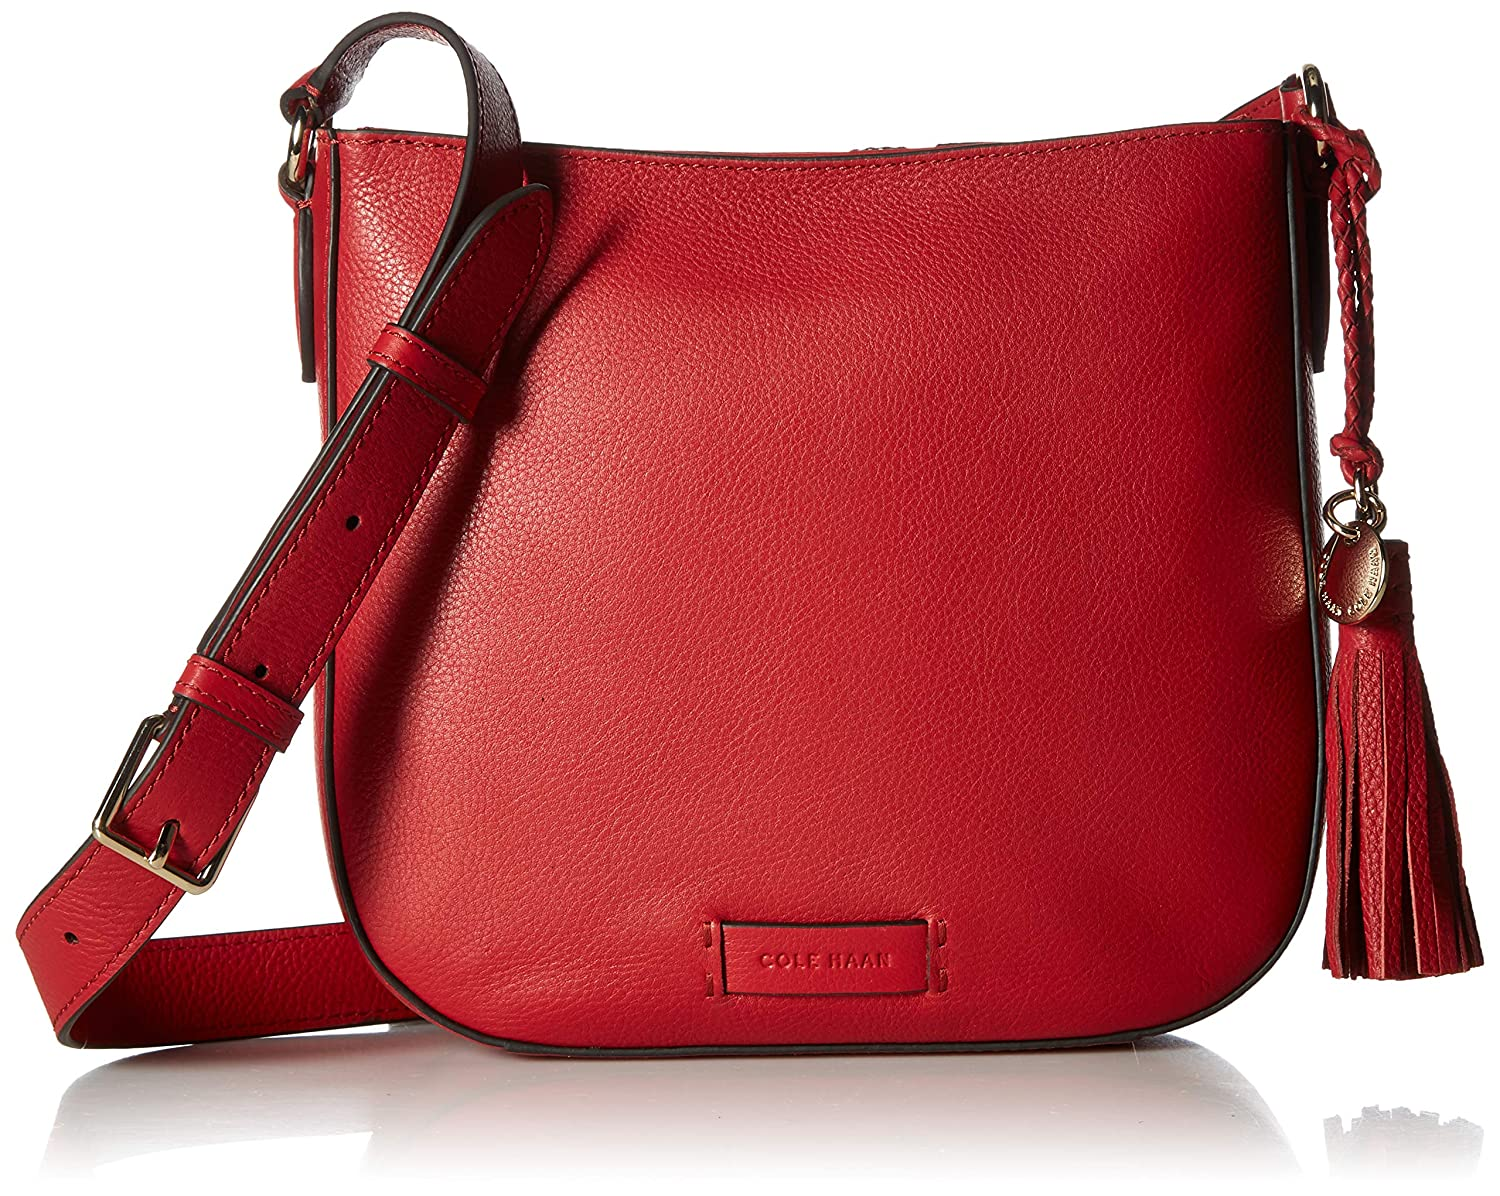 d5d4740bf3 Cole Haan Piper Saddle Crossbody, barbados cherry: Handbags: Amazon.com